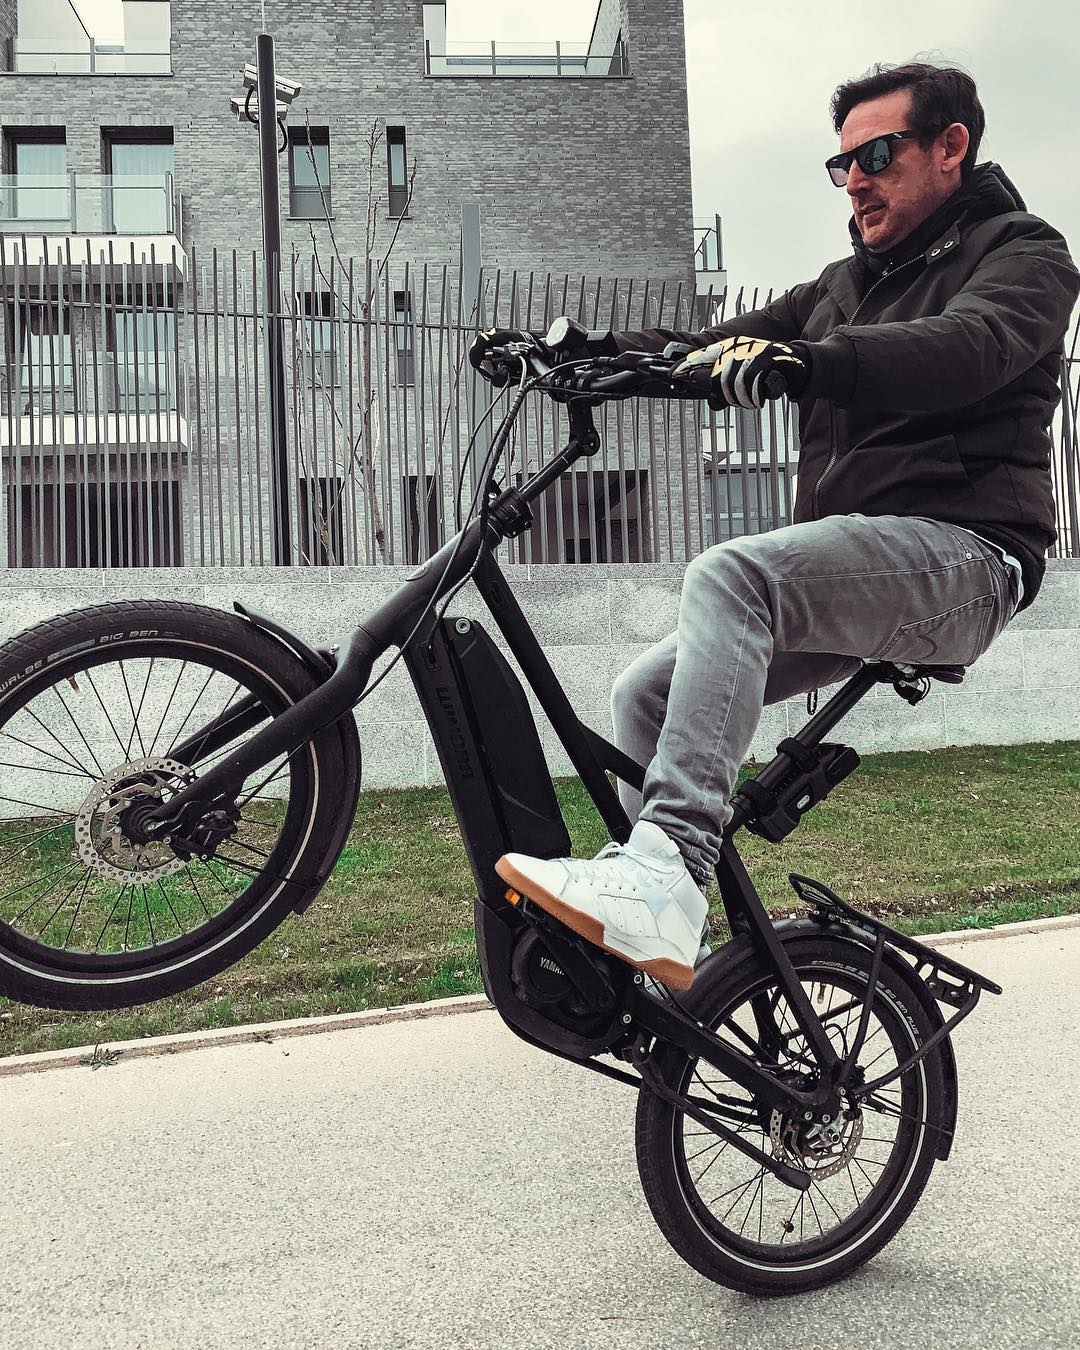 Winora Radius wheelie on the way to lunch. Fun and practical little bike! #winora #ebike #commuterbike